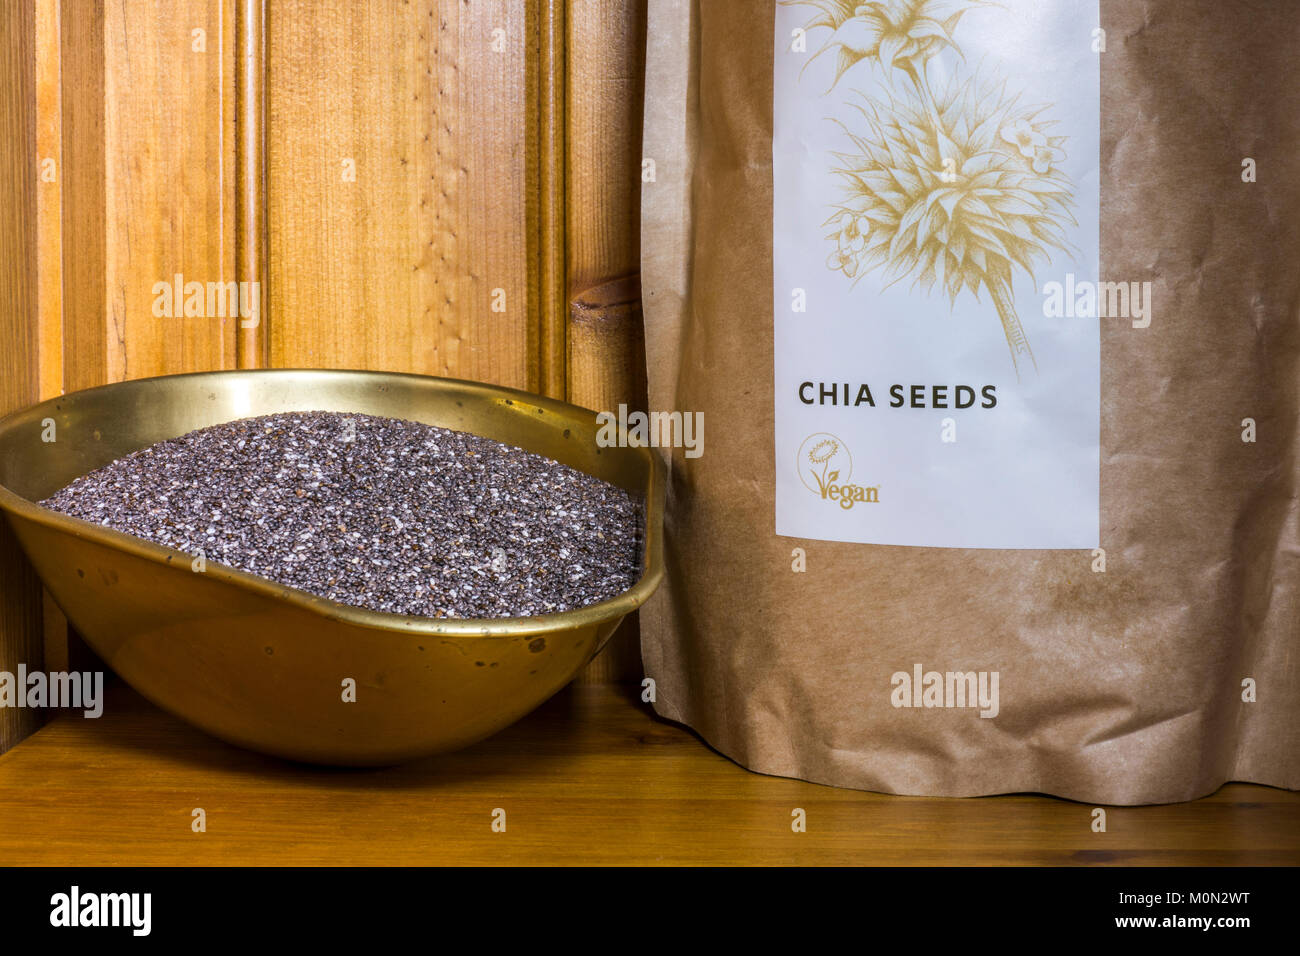 Chia seeds (salvia hispanica). Organic, uncooked, high in protein, vegan, superfood. In a packet and a weighing - Stock Image